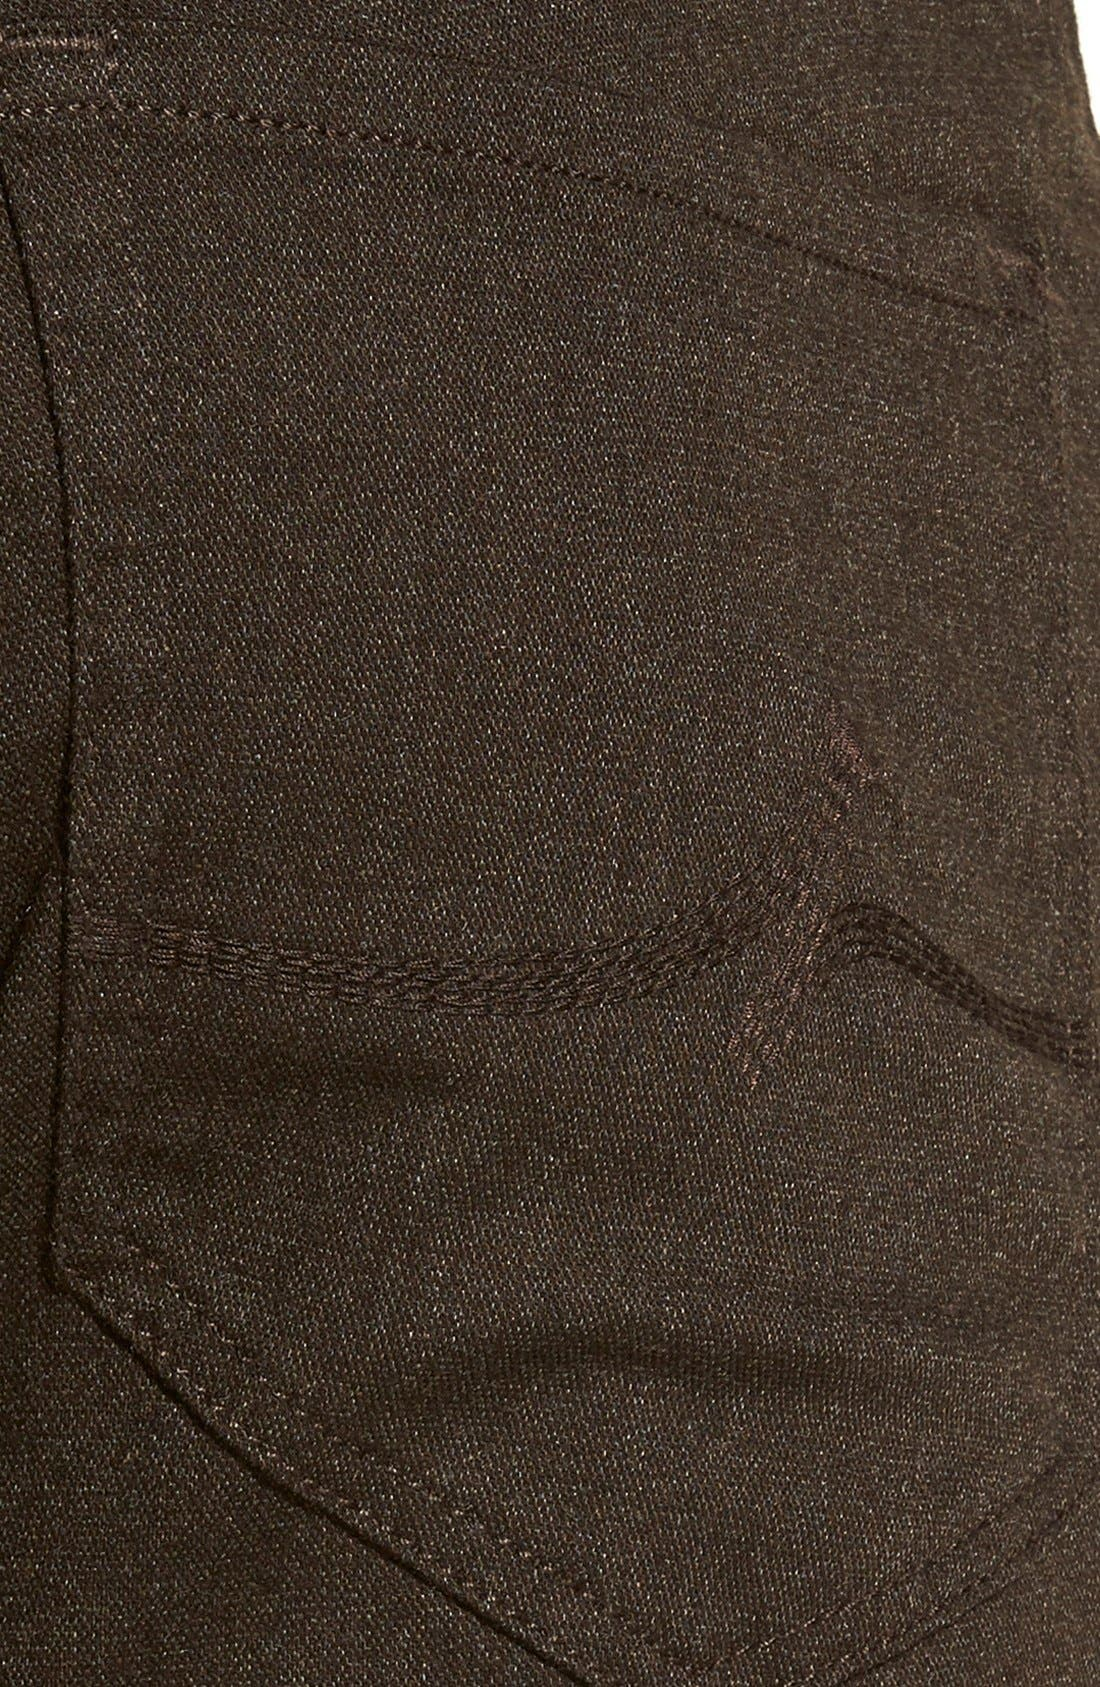 'Charisma' Relaxed Fit Jeans,                             Alternate thumbnail 4, color,                             200